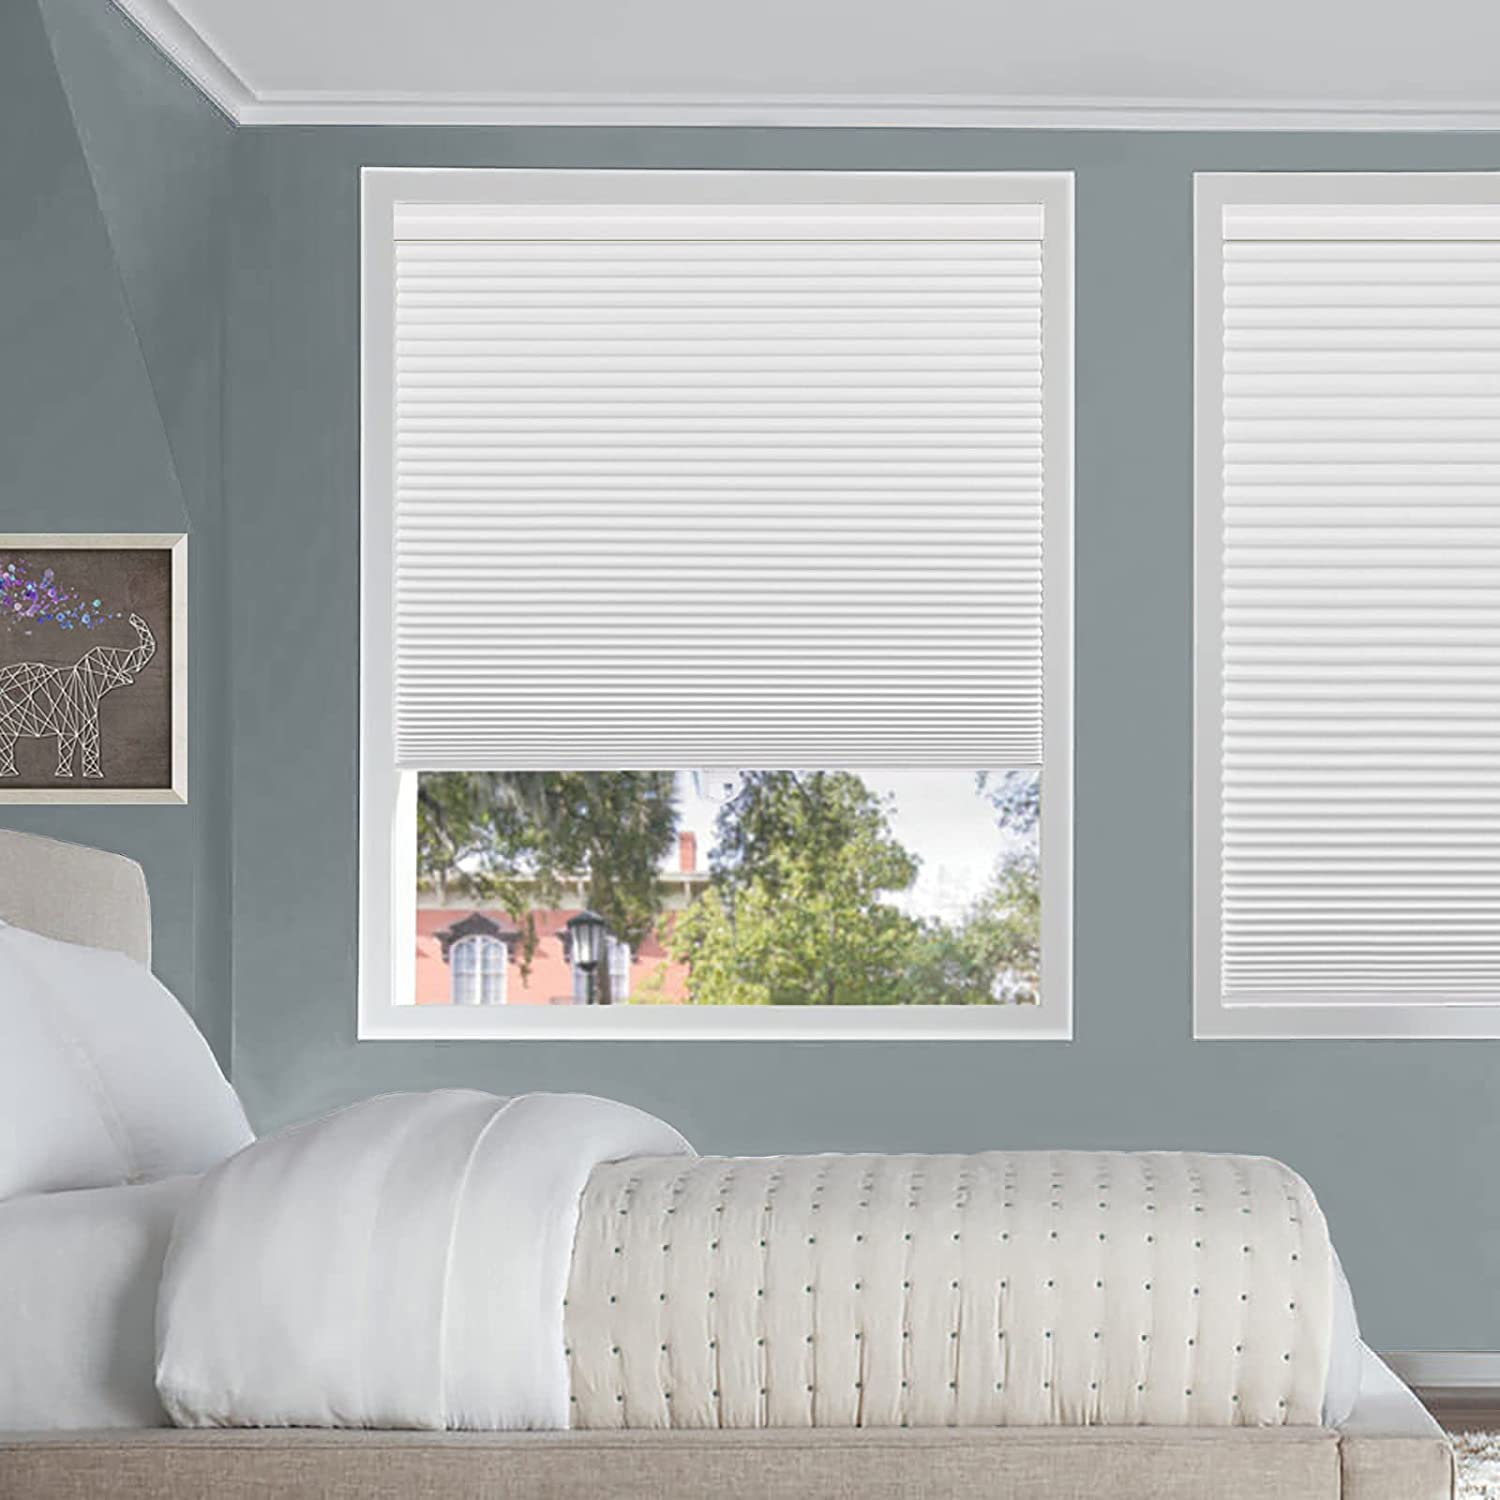 Cellular Shades Max 66% OFF for Windows and Doors- Cord No Total Blackout Ho OFFicial store